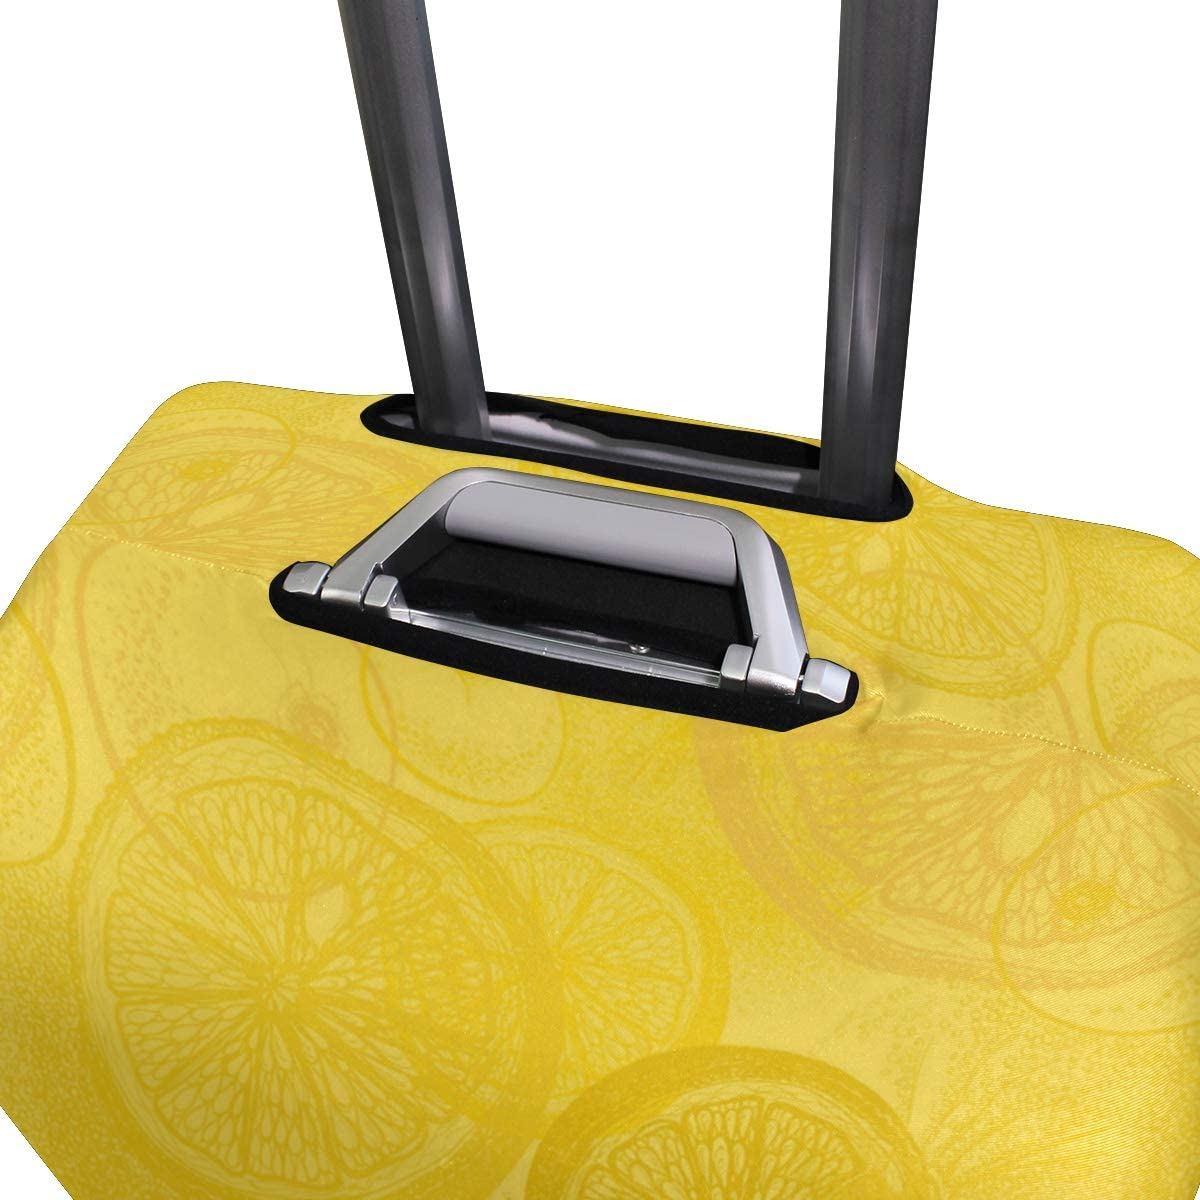 Delicious Orange Juice Lemon Drink Travel Luggage Protector Case Suitcase Protector For Man/&Woman Fits 18-32 Inch Luggage